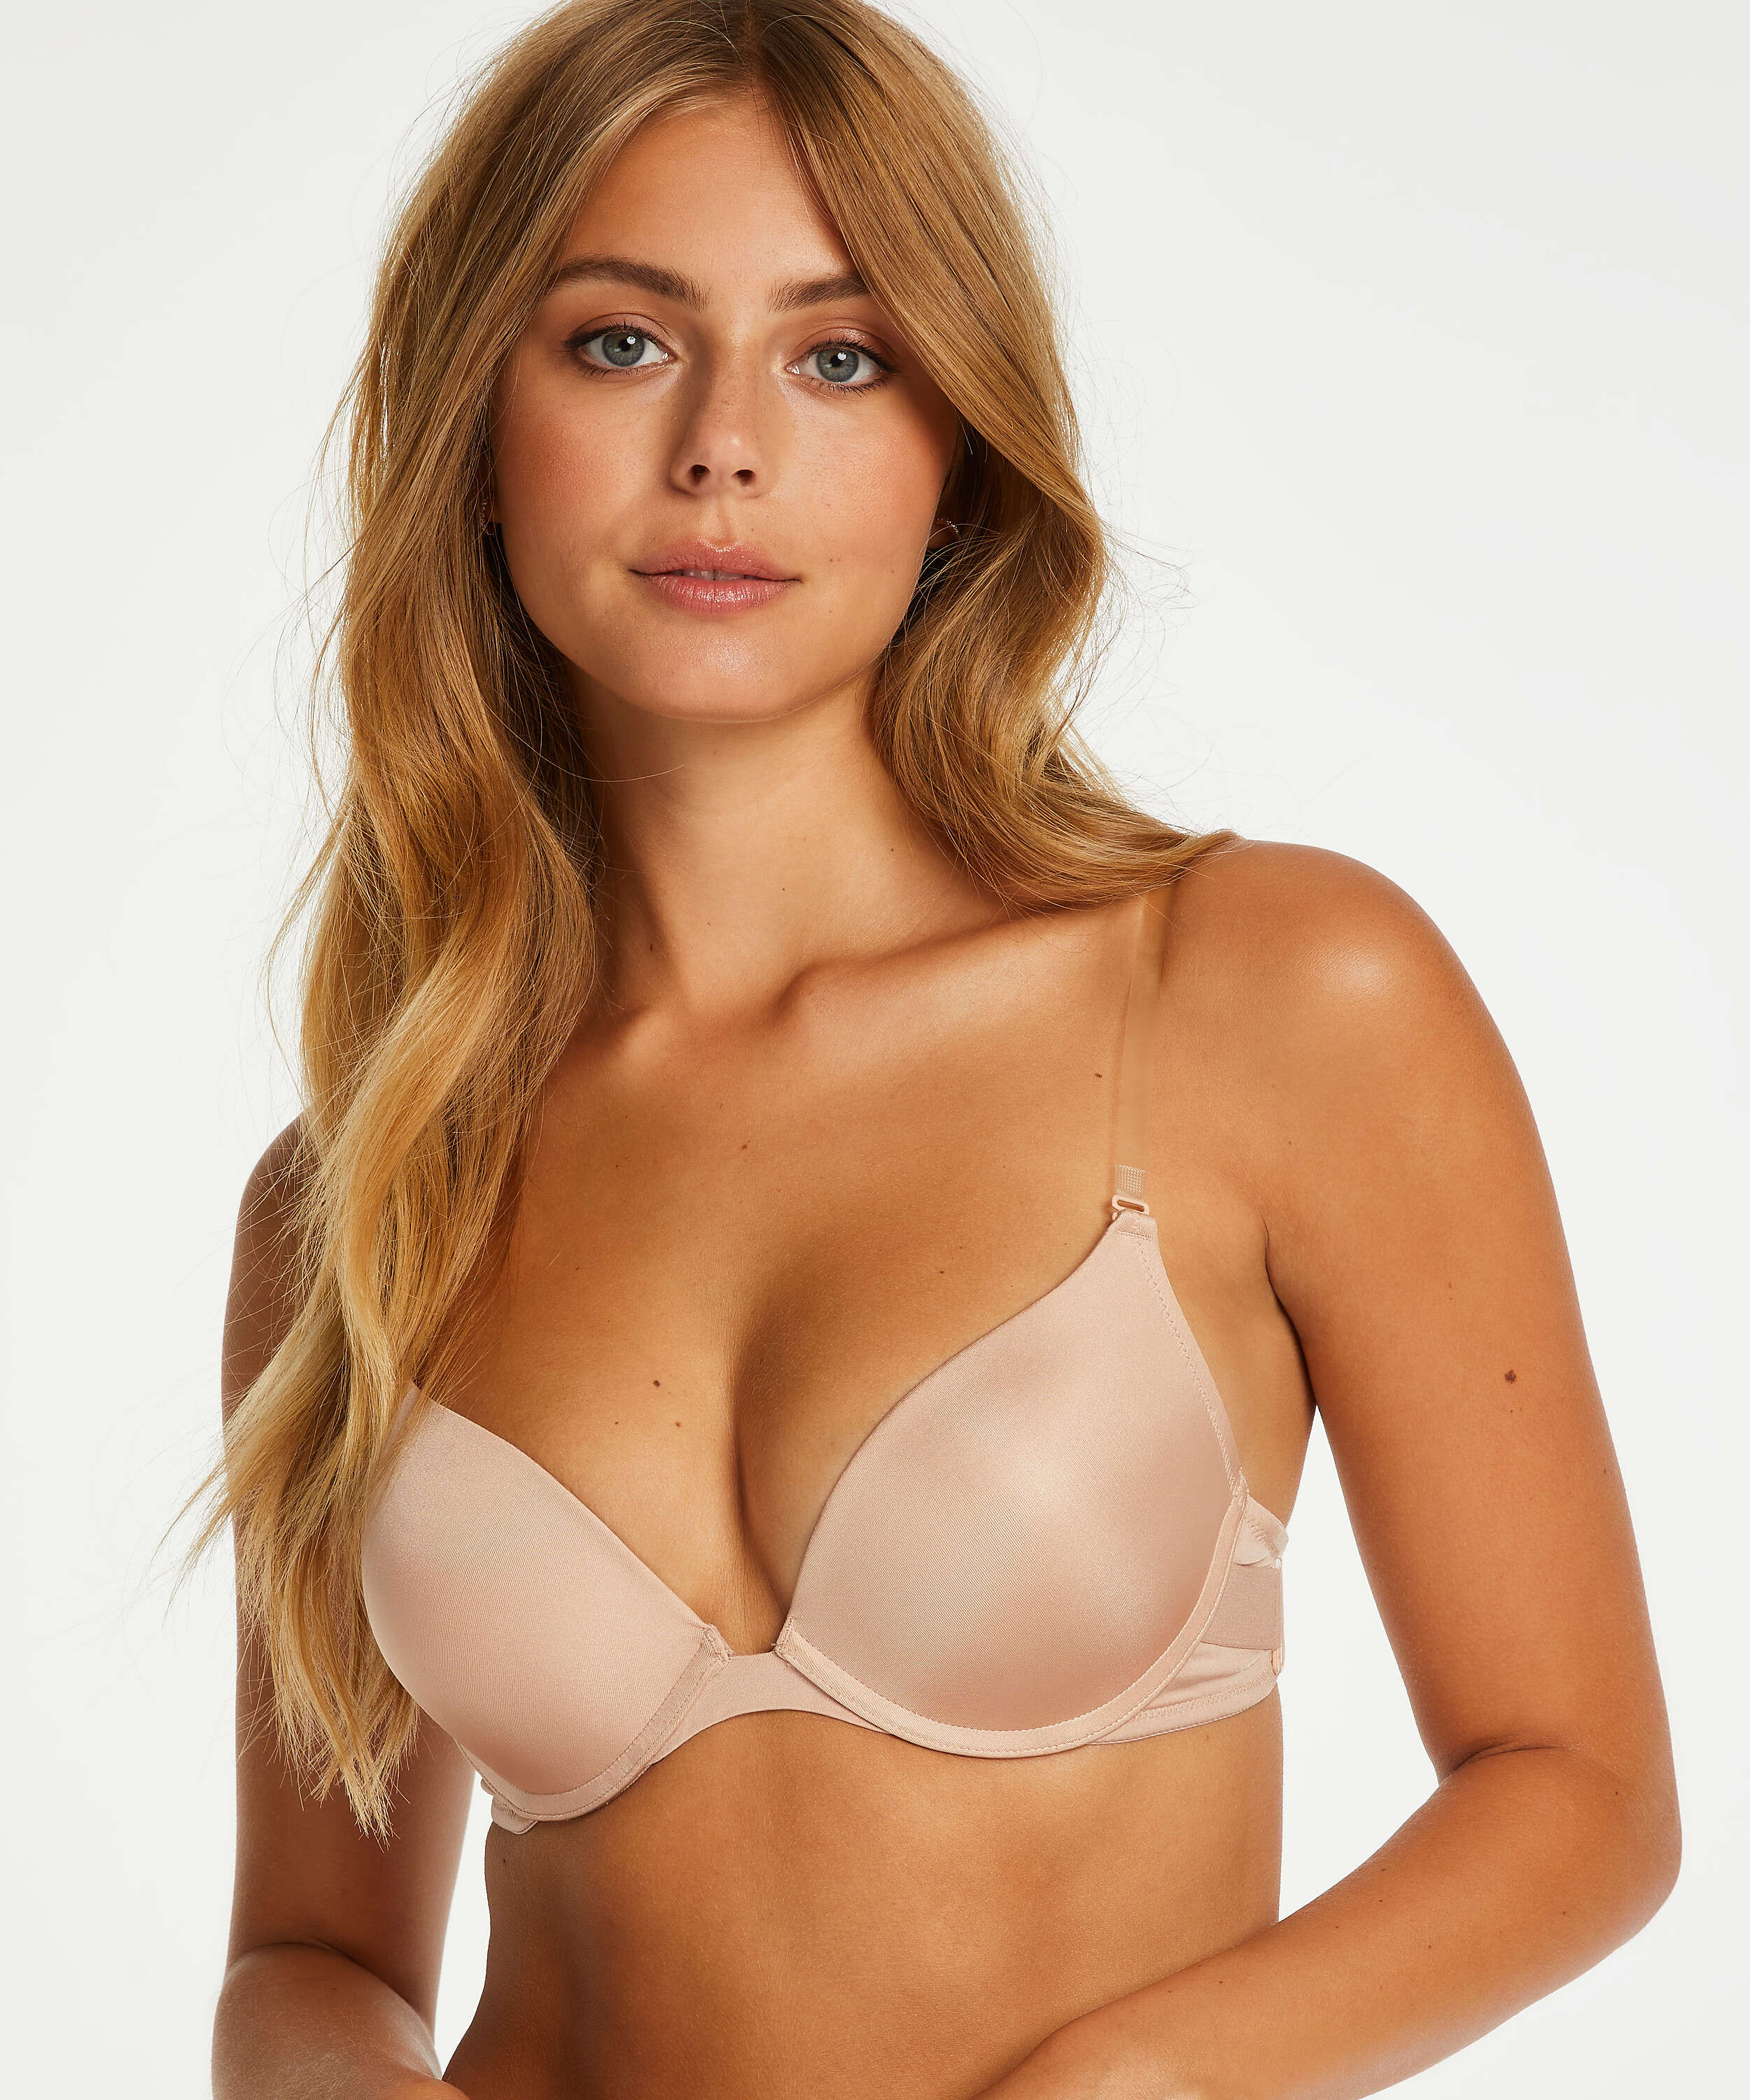 Soutien-gorge à armatures préformé push-up Transparent back, Beige, main